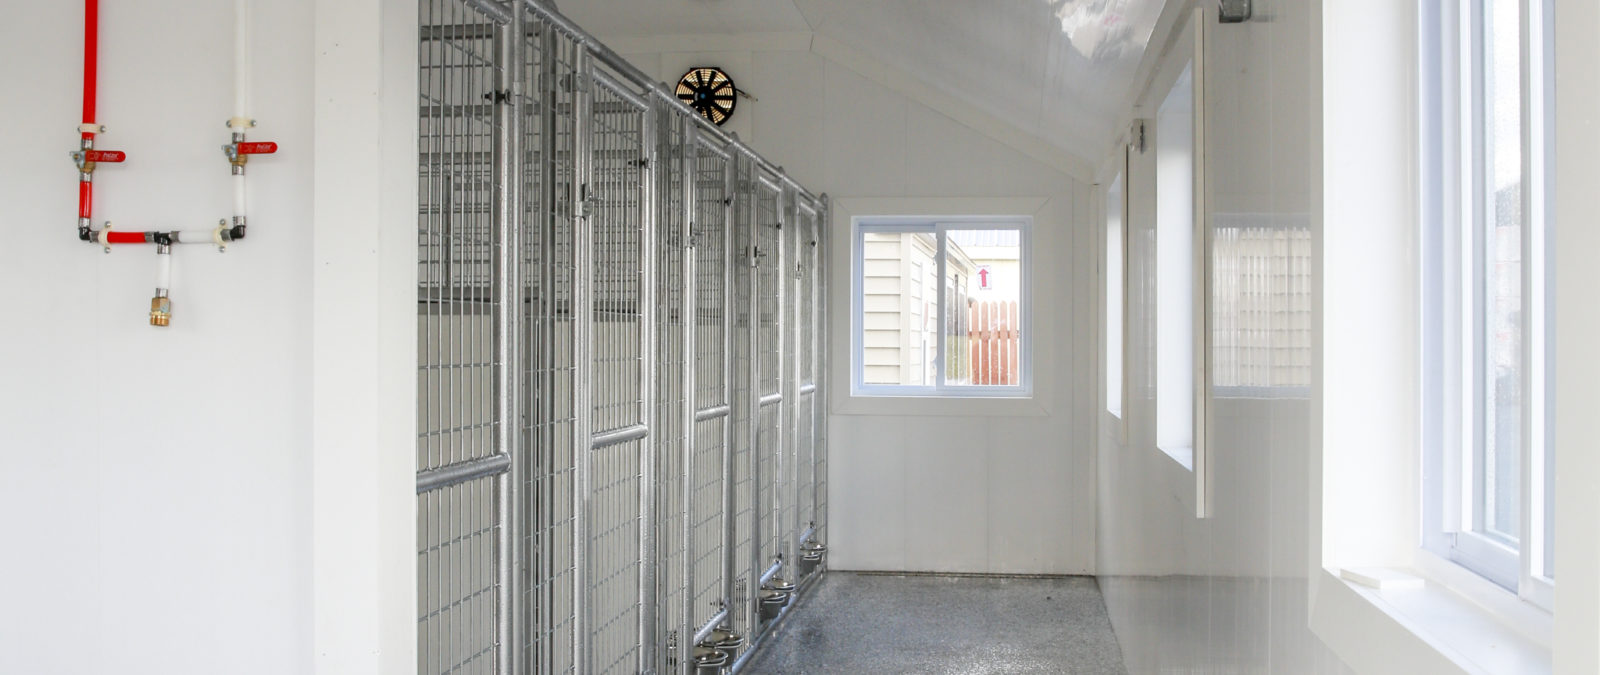 dog kennels for groomers interior view of 10x28 5 run kennel showing welded wire panels and exhaust fan